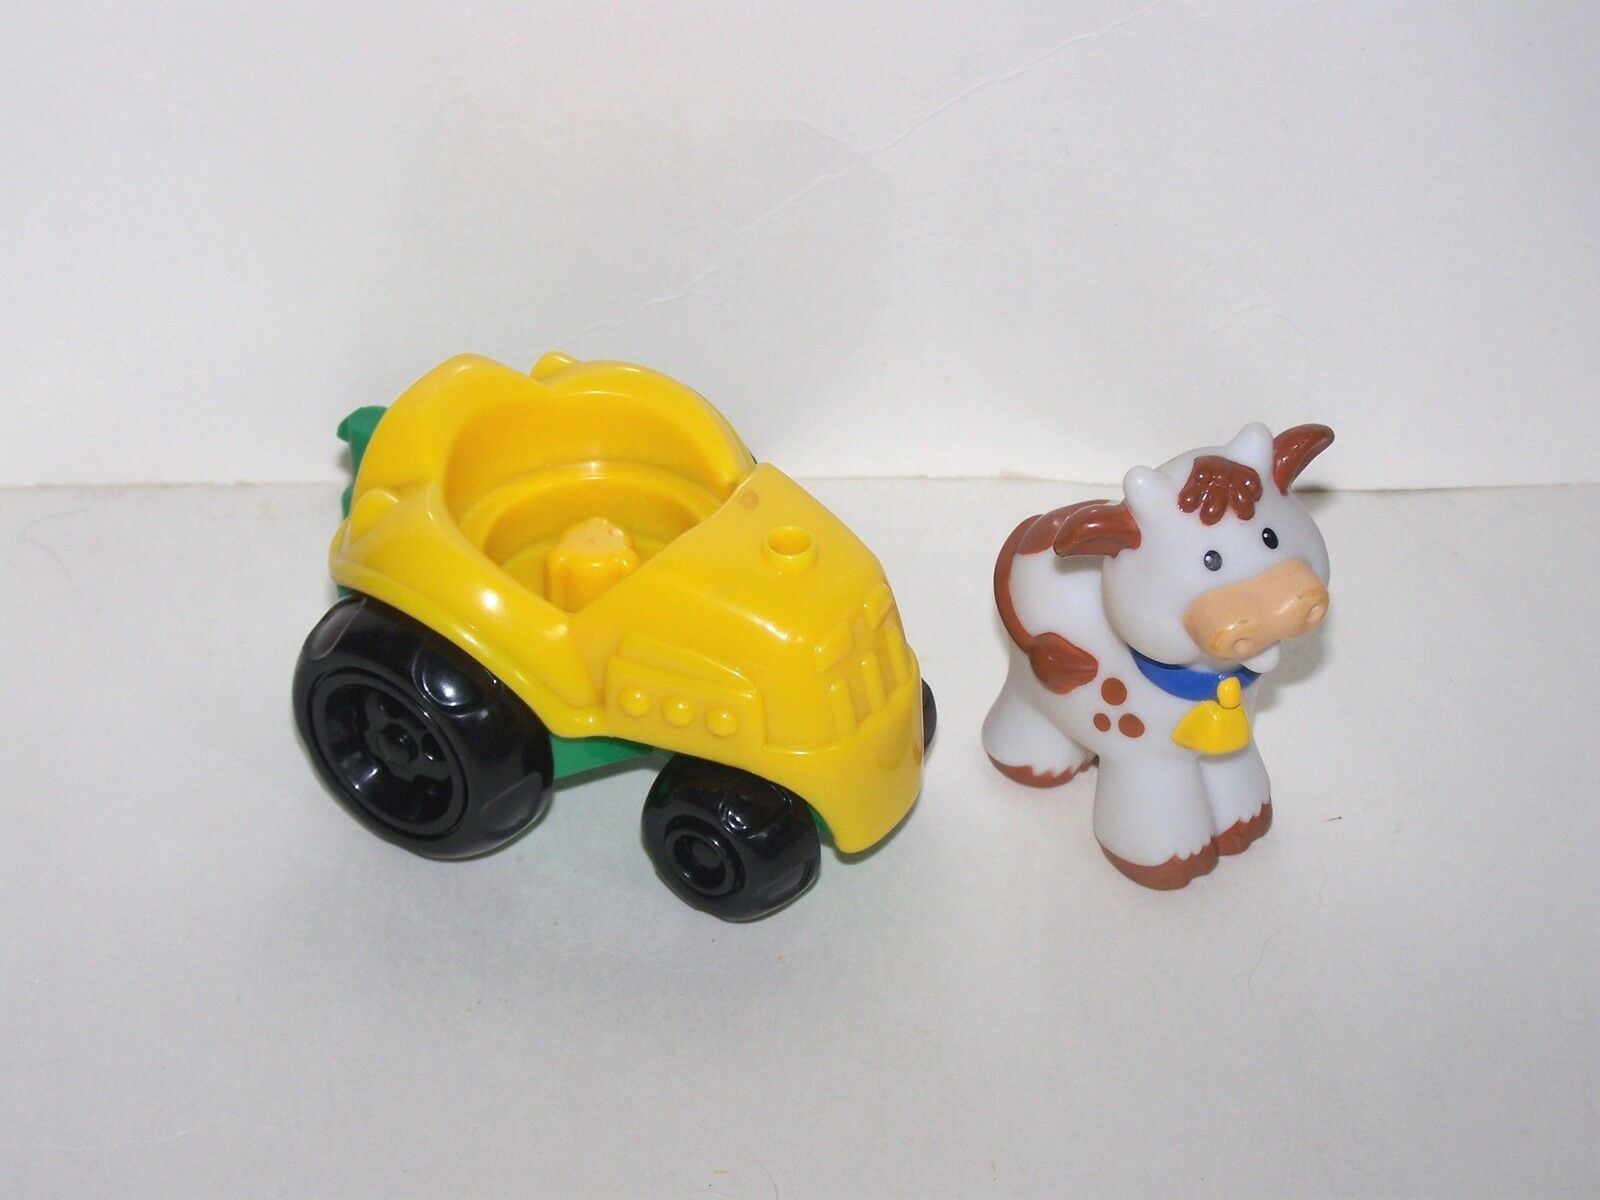 Little People tractor 2002 yellow & green Cow white and brown mattel 2002